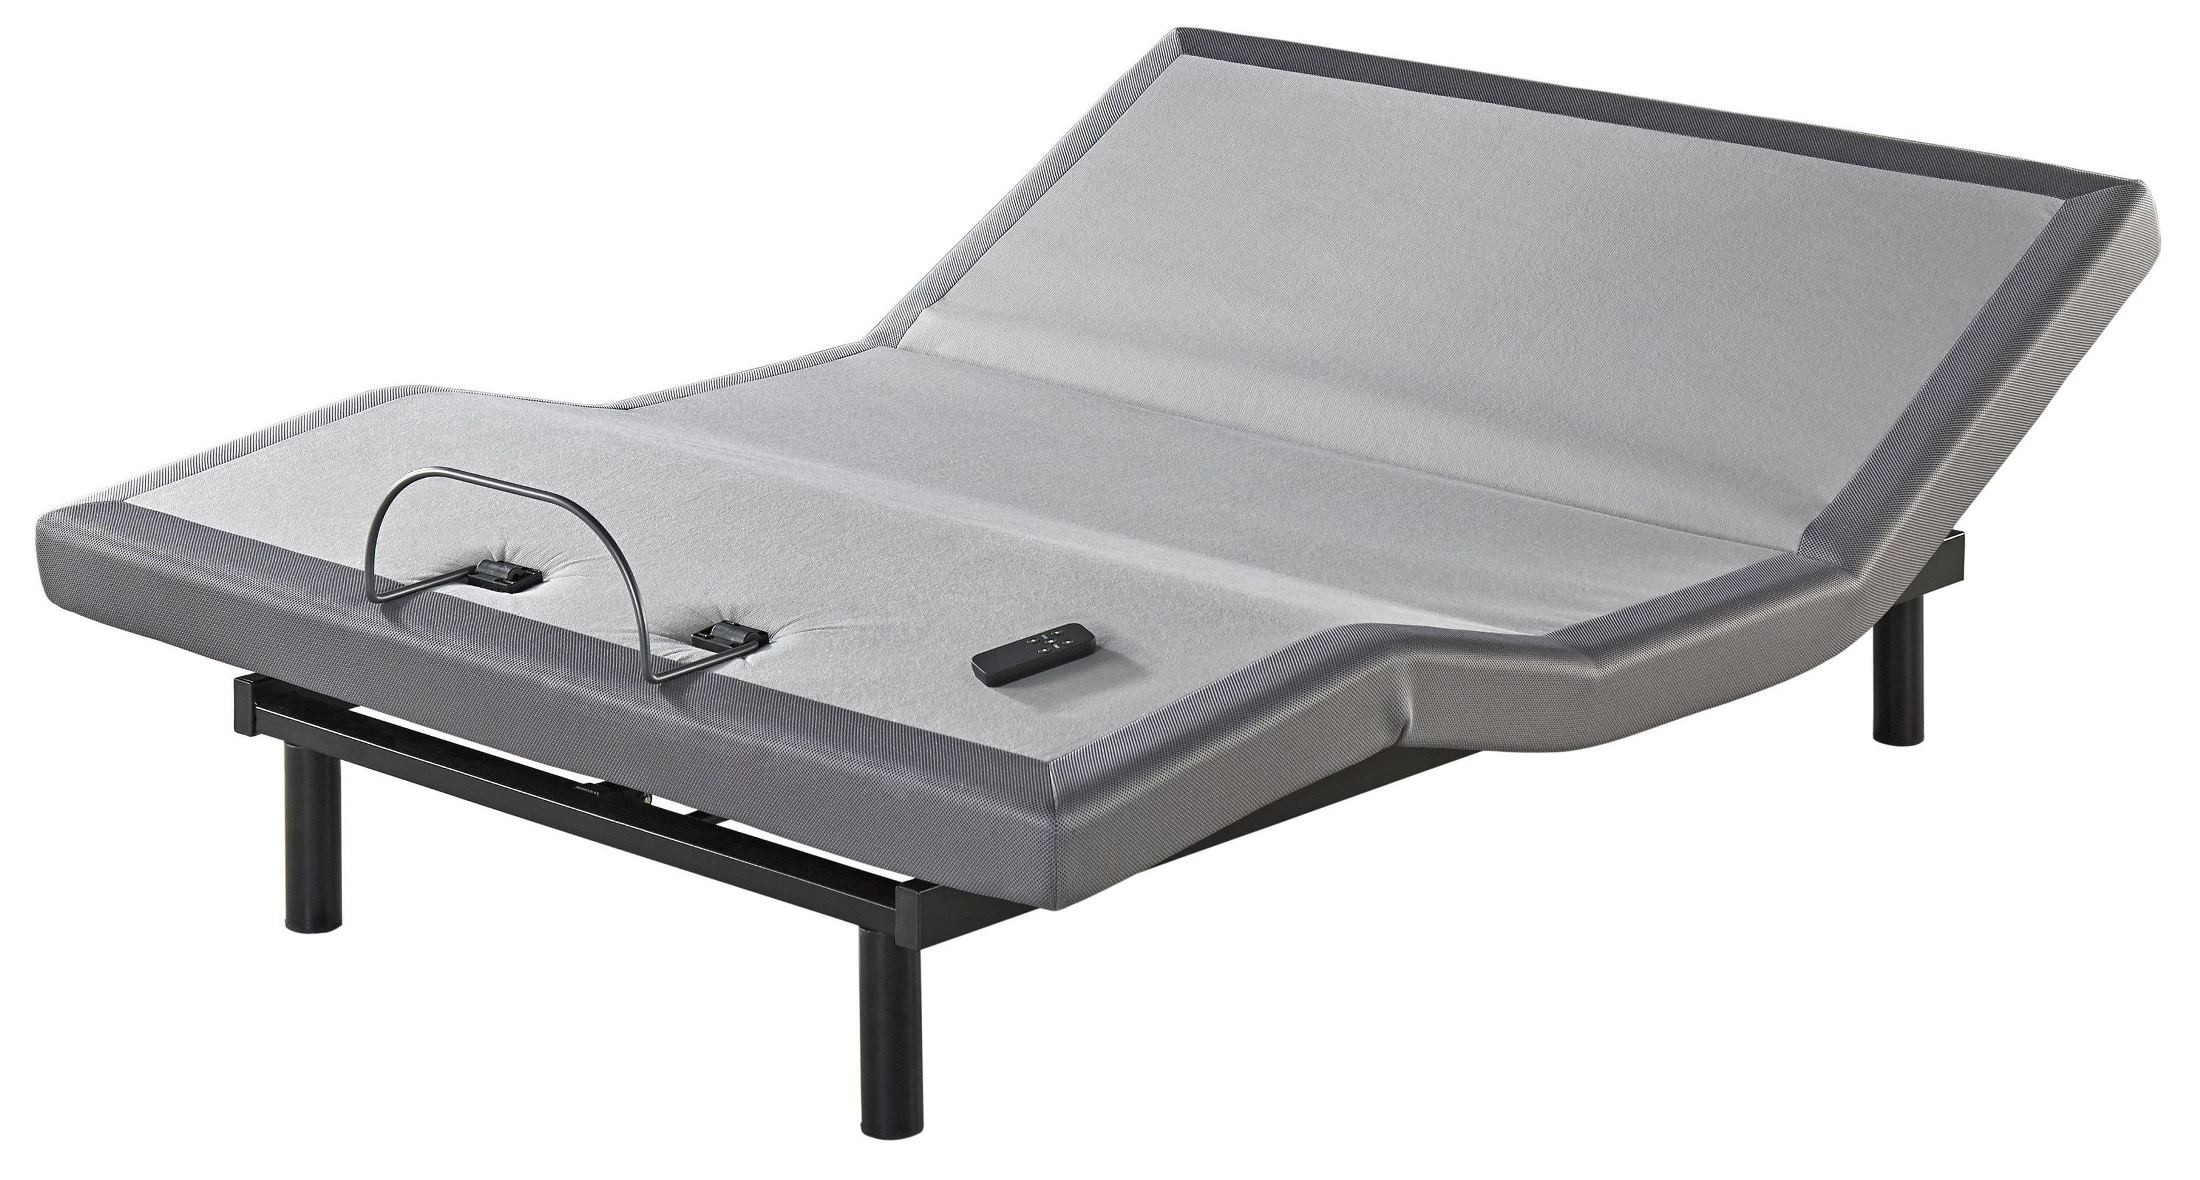 Zero Gravity King Adjustable Bed, M9X542A-M9X542, Ashley